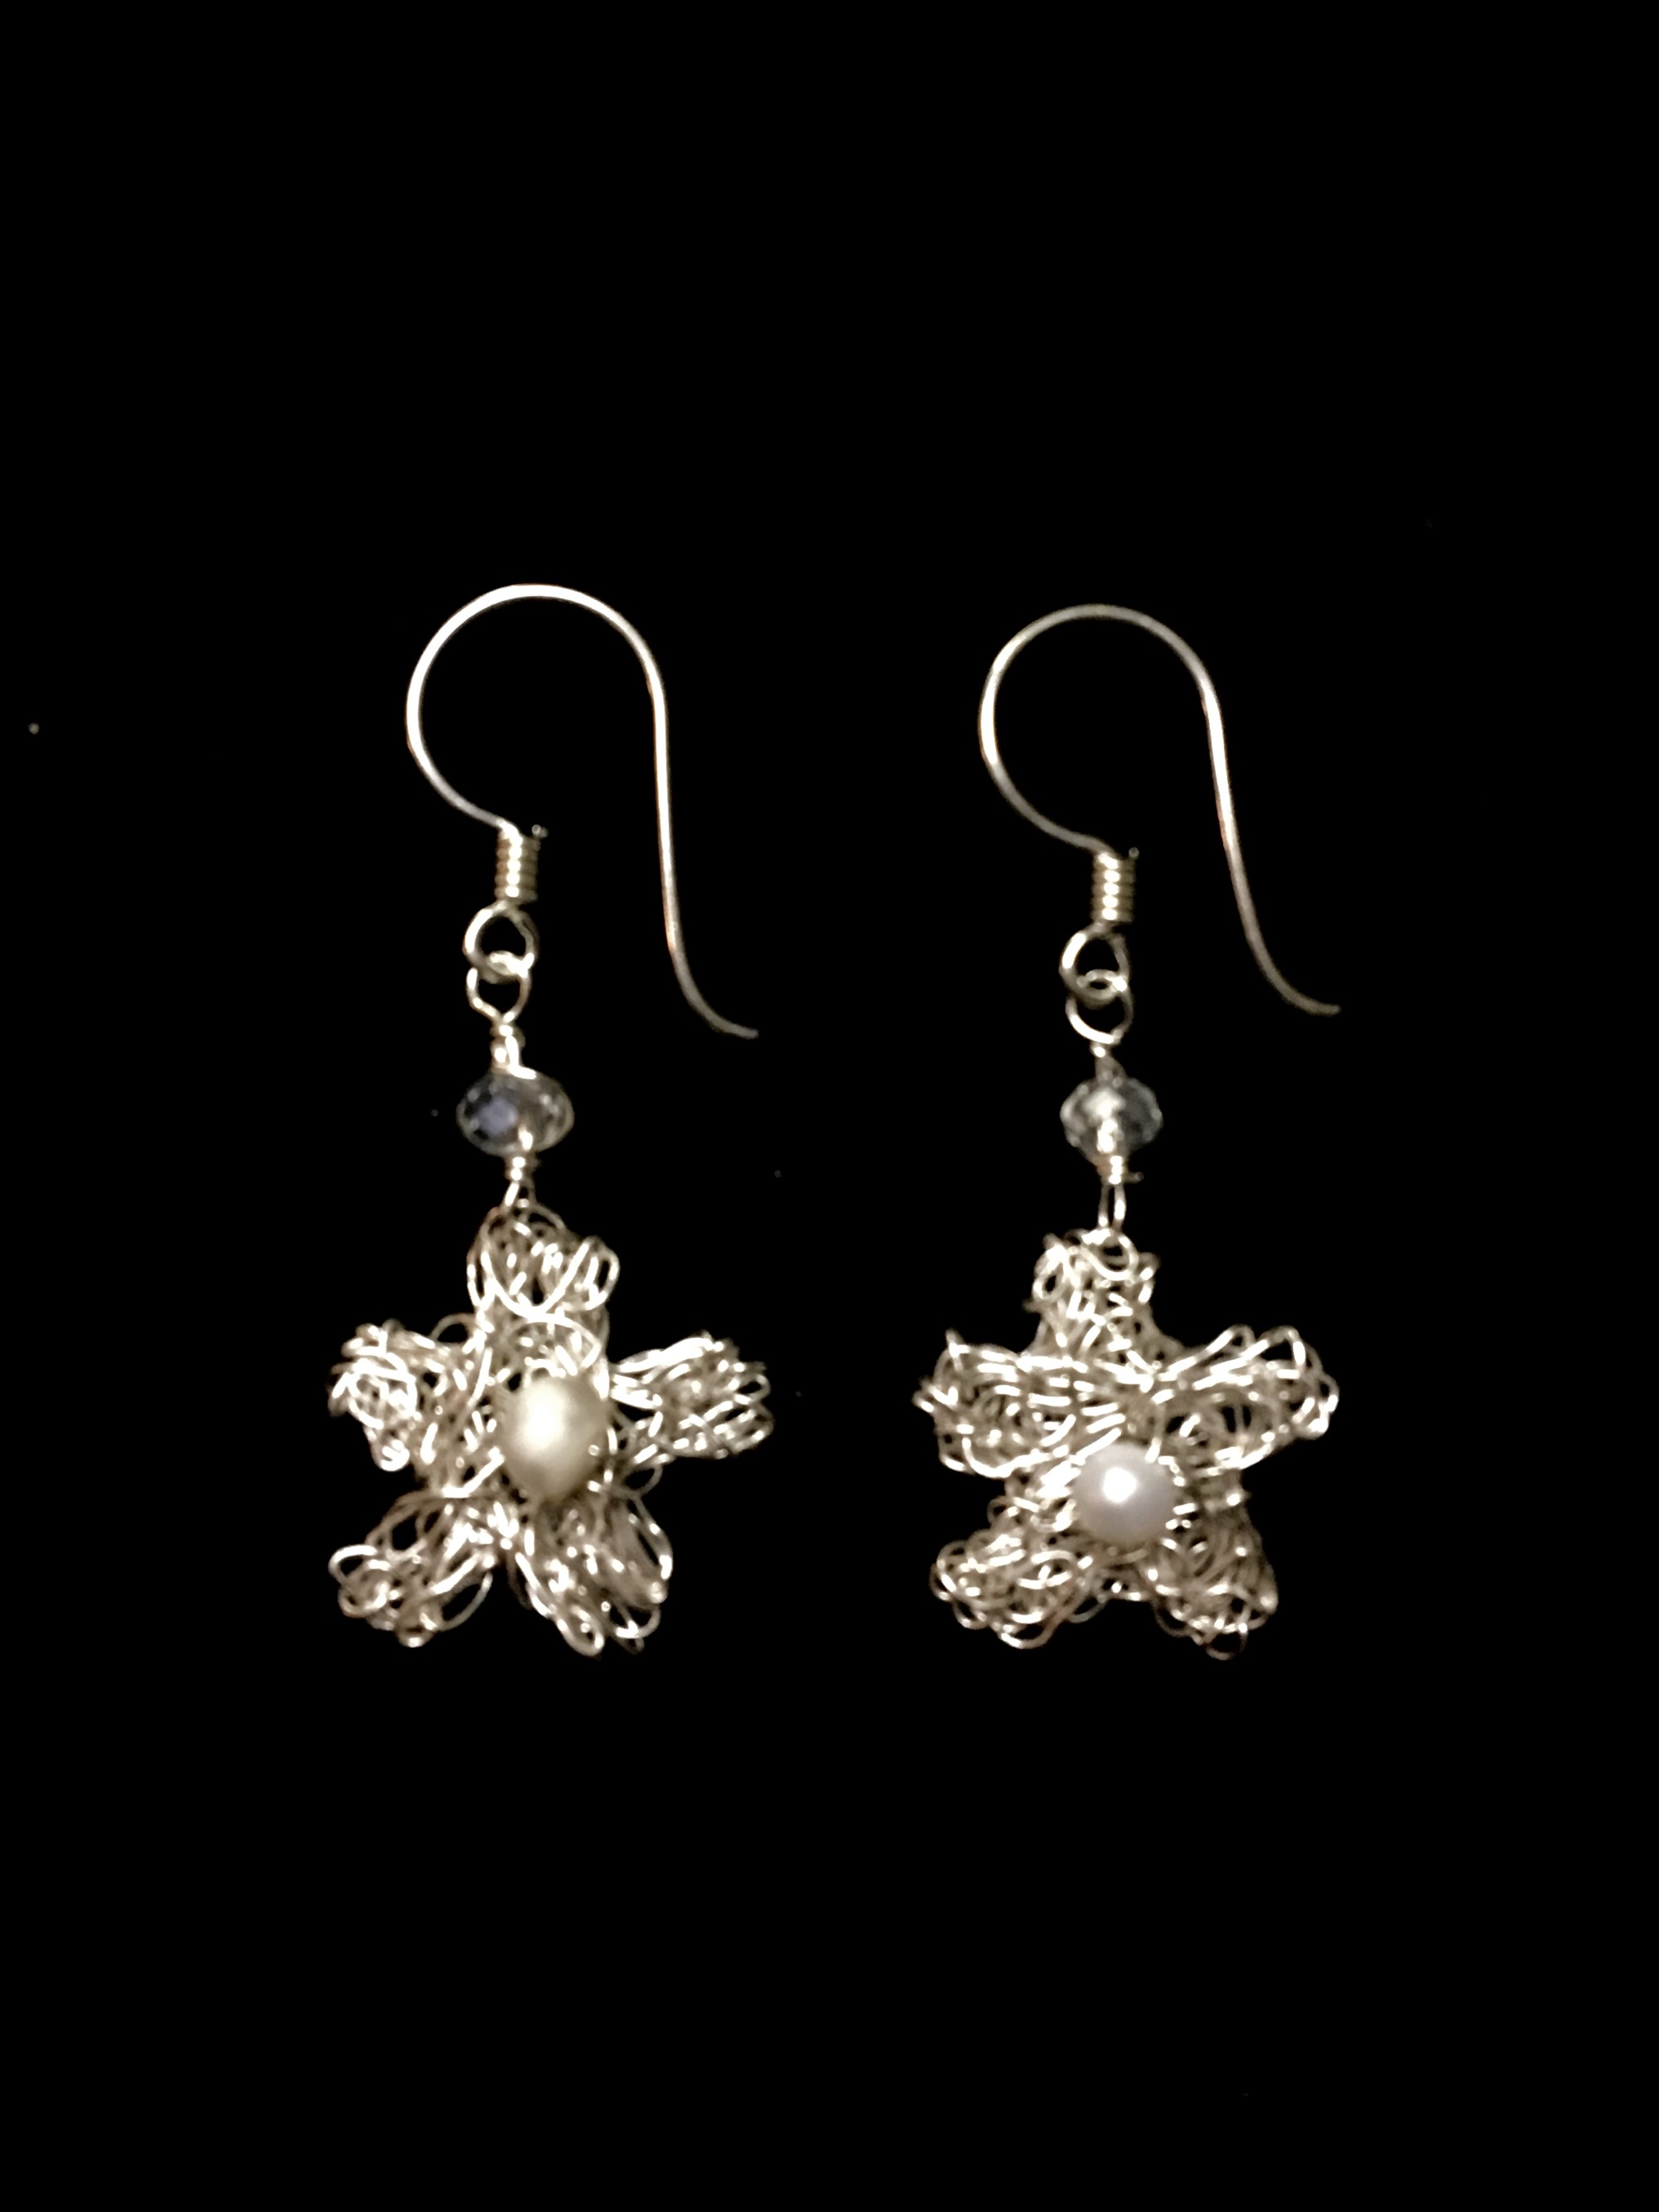 Candid Claire Earrings - Tangled Flower - Silver Plated